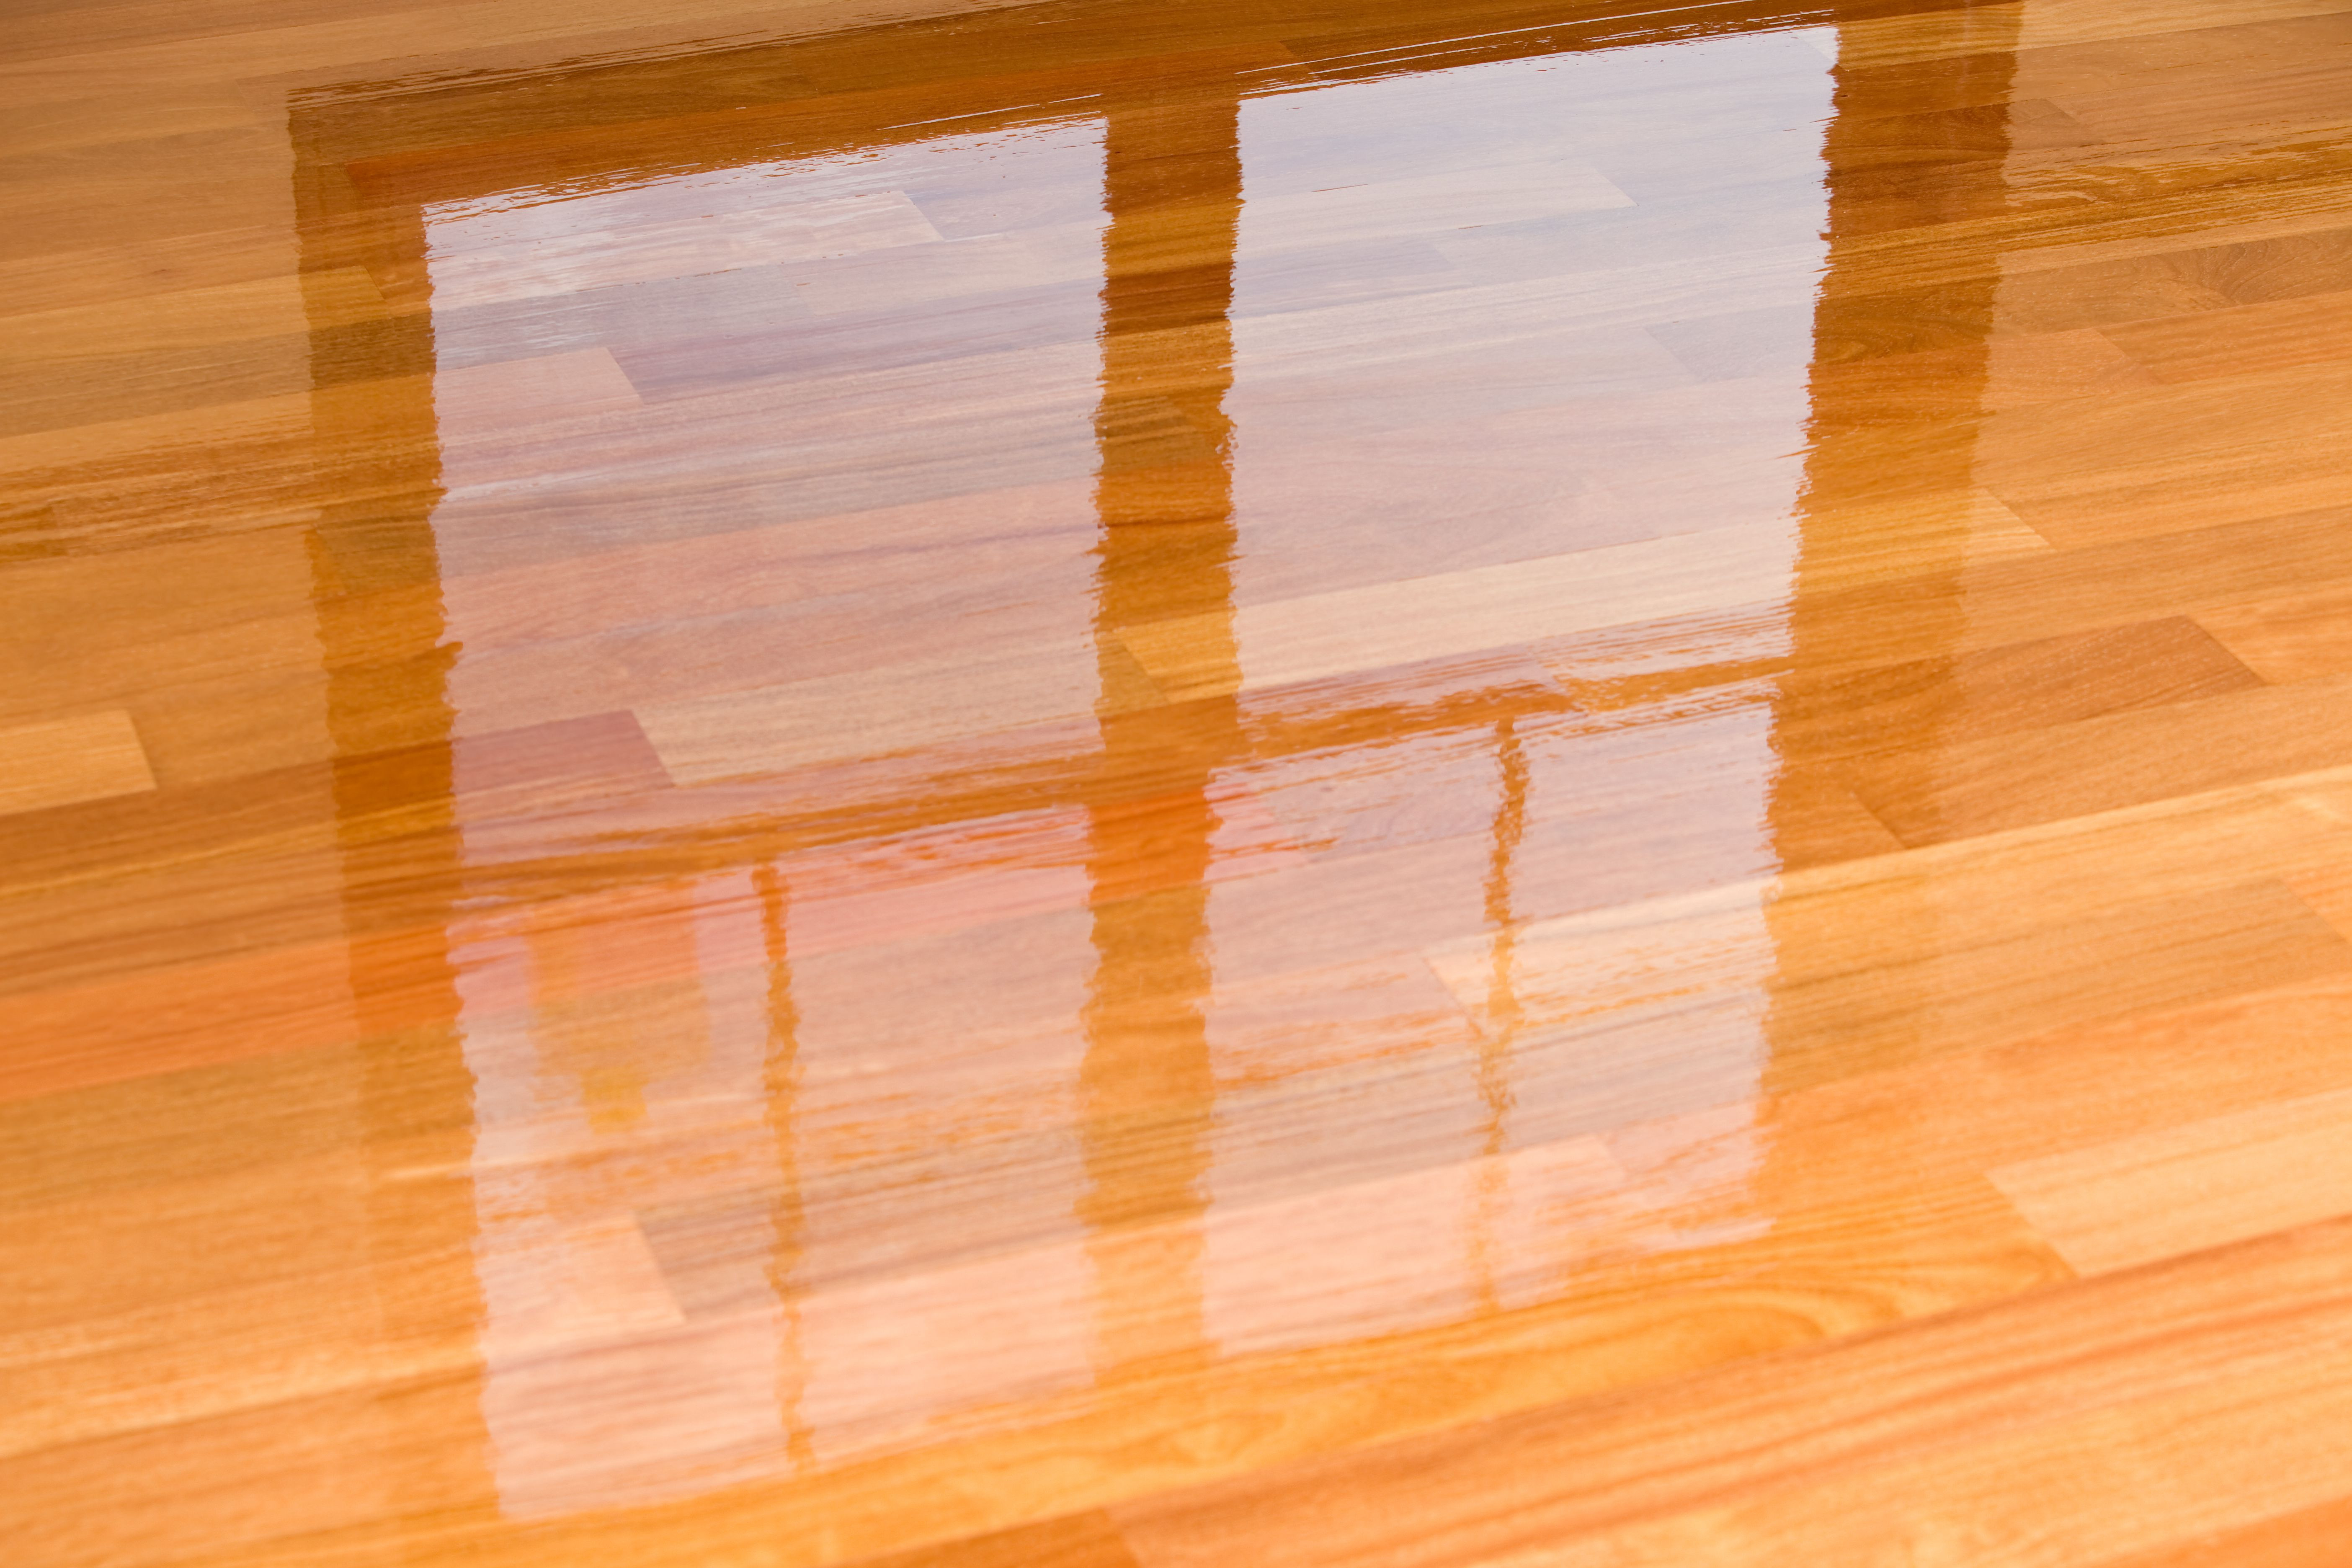 beech hardwood flooring cost of guide to laminate flooring water and damage repair for wet polyurethane on new hardwood floor with window reflection 183846705 582e34da3df78c6f6a403968